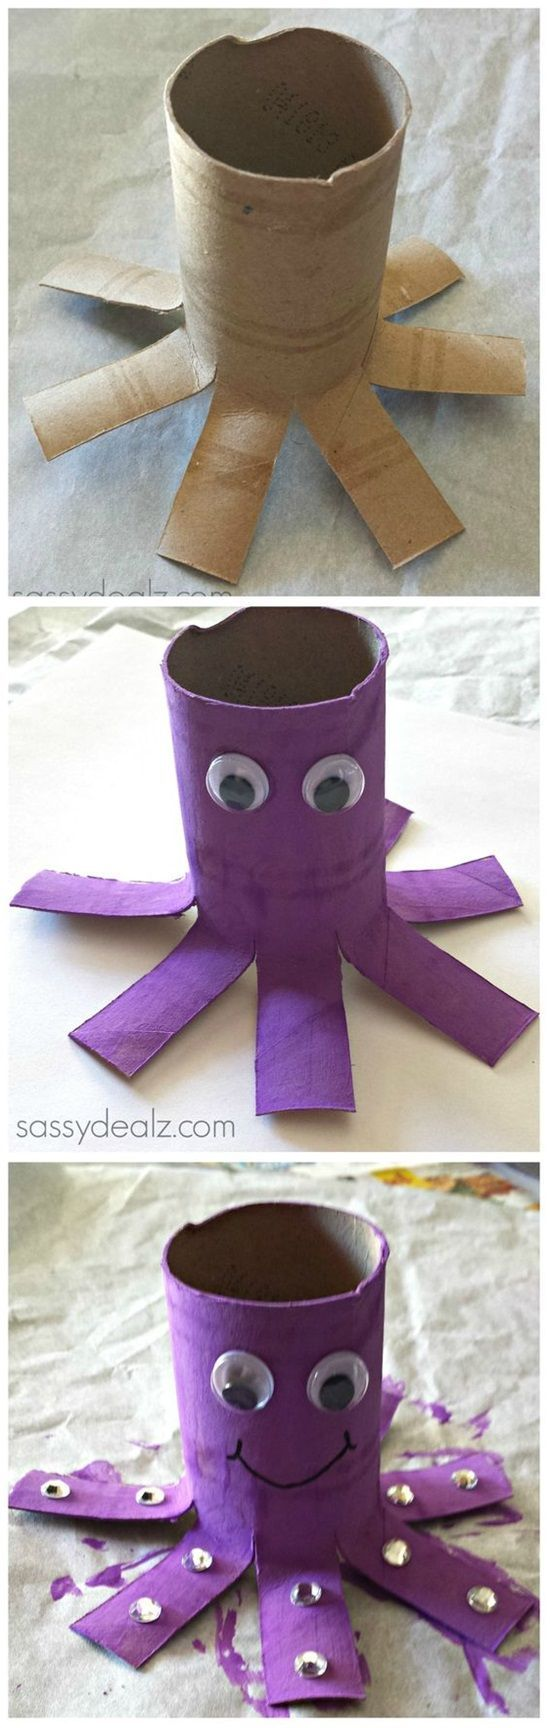 We love toilet paper rolls, they are plentiful and you will feel good about recycling them instead of just throwing them into the trash. Add to that, with toilet paper rolls you can create amazing crafts that your kids will truly enjoy and play with. Here is our compilation with some of the best projects you can make with toilet paper rolls, and your kids can help you too.